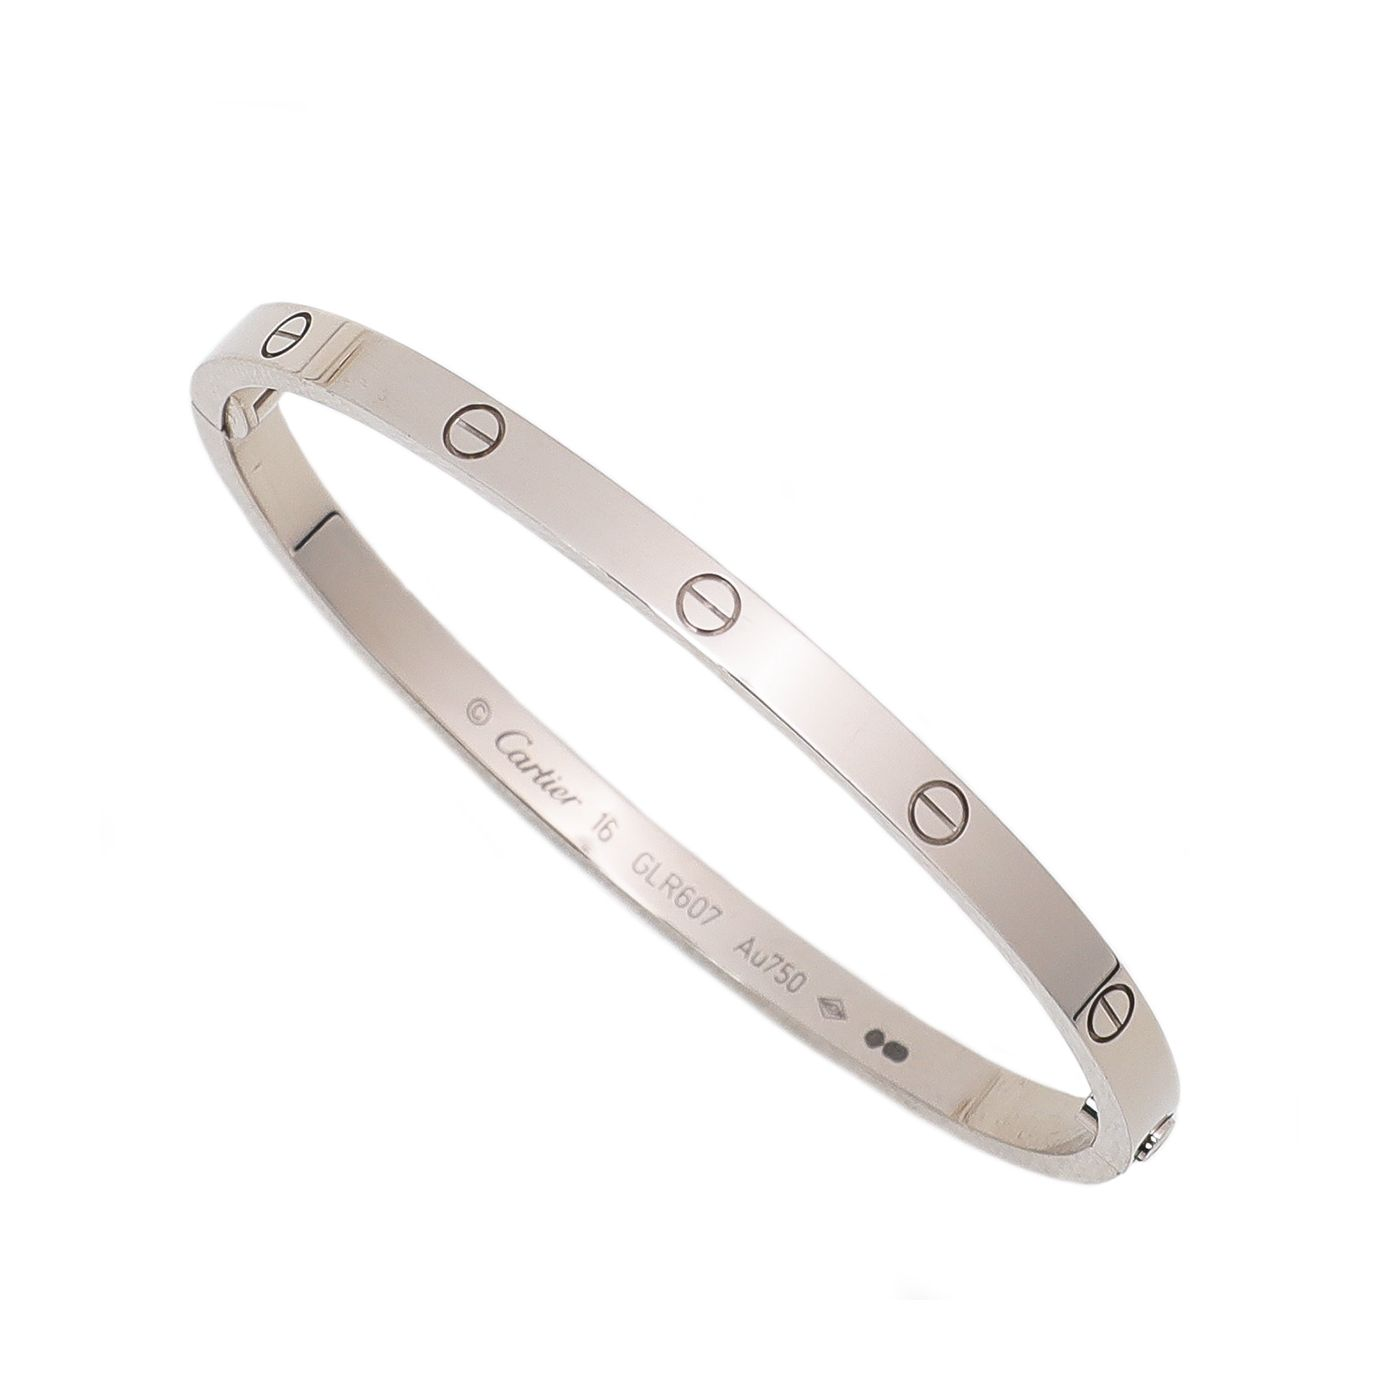 Cartier 18K White Gold Love Bangle Small Model Bracelet